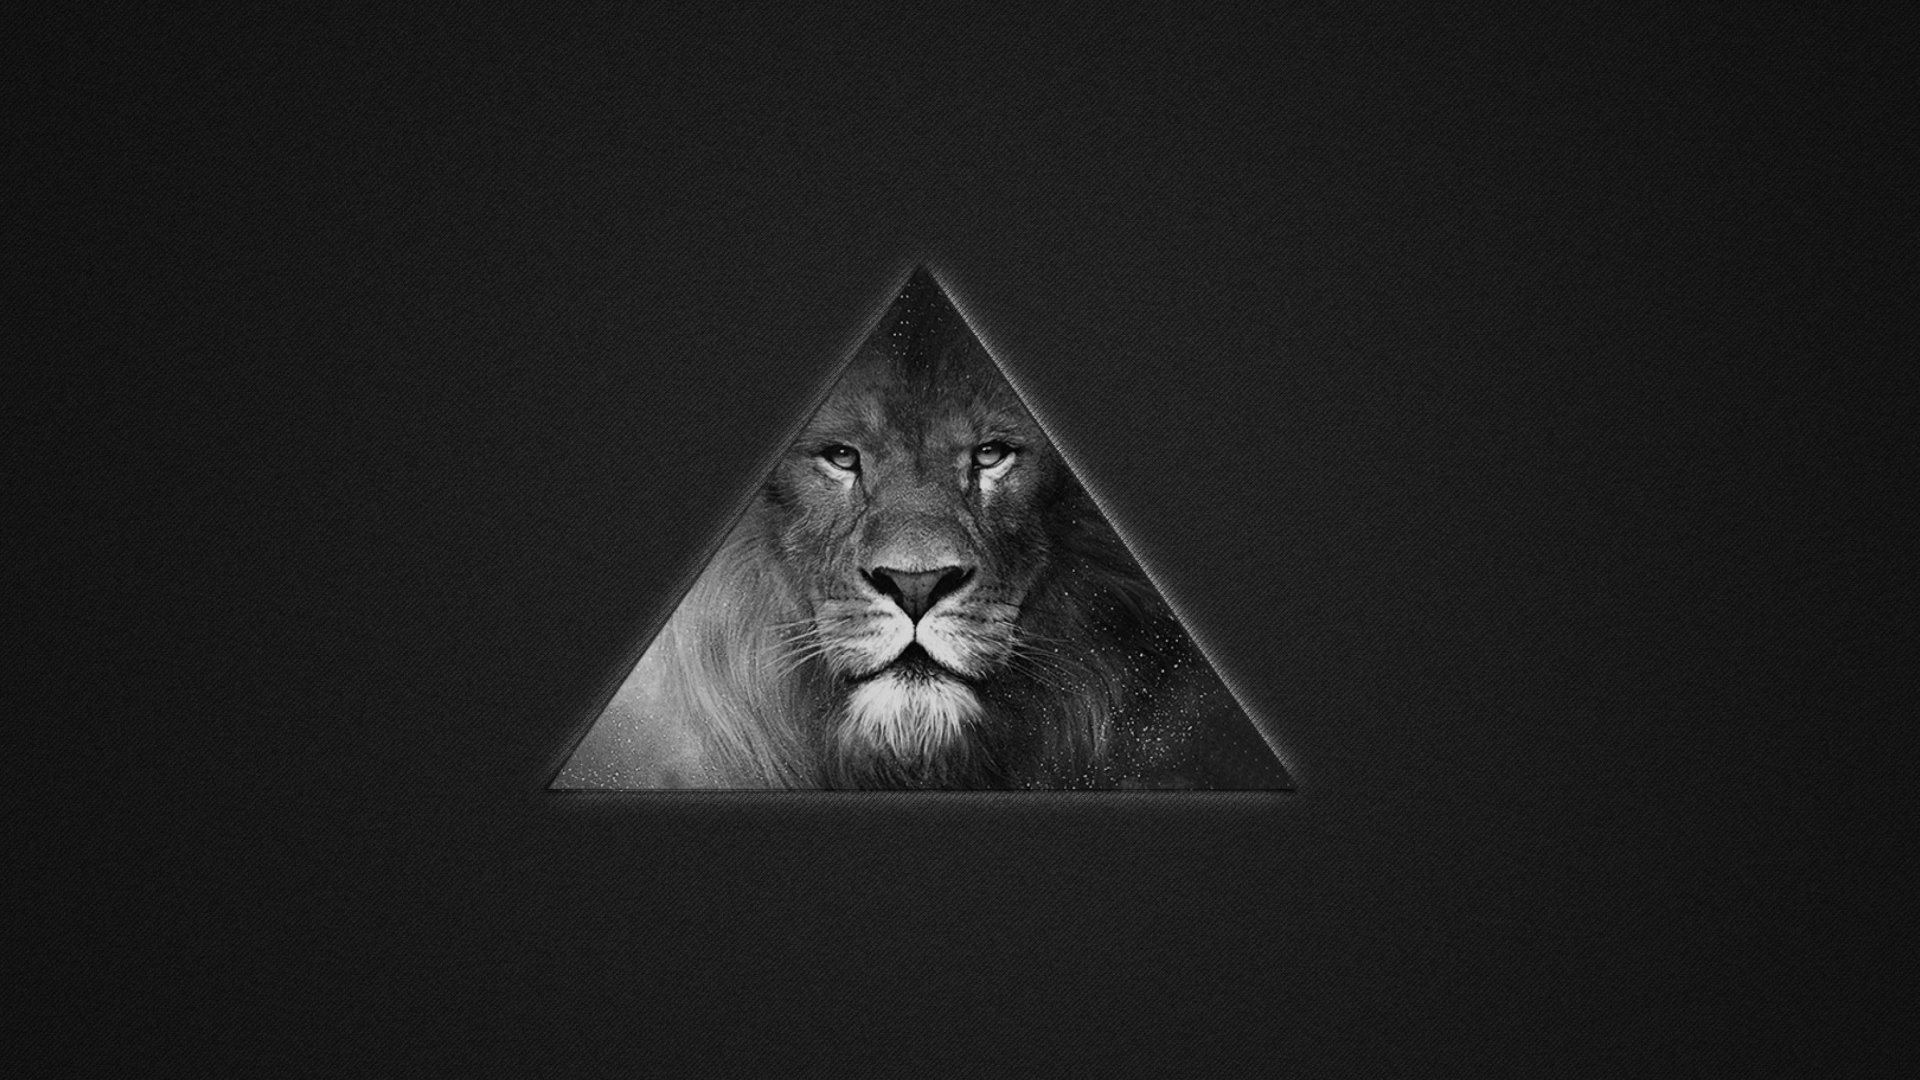 Lions Black And White Triangle Wallpaper For Desktop 1920x1080 Full